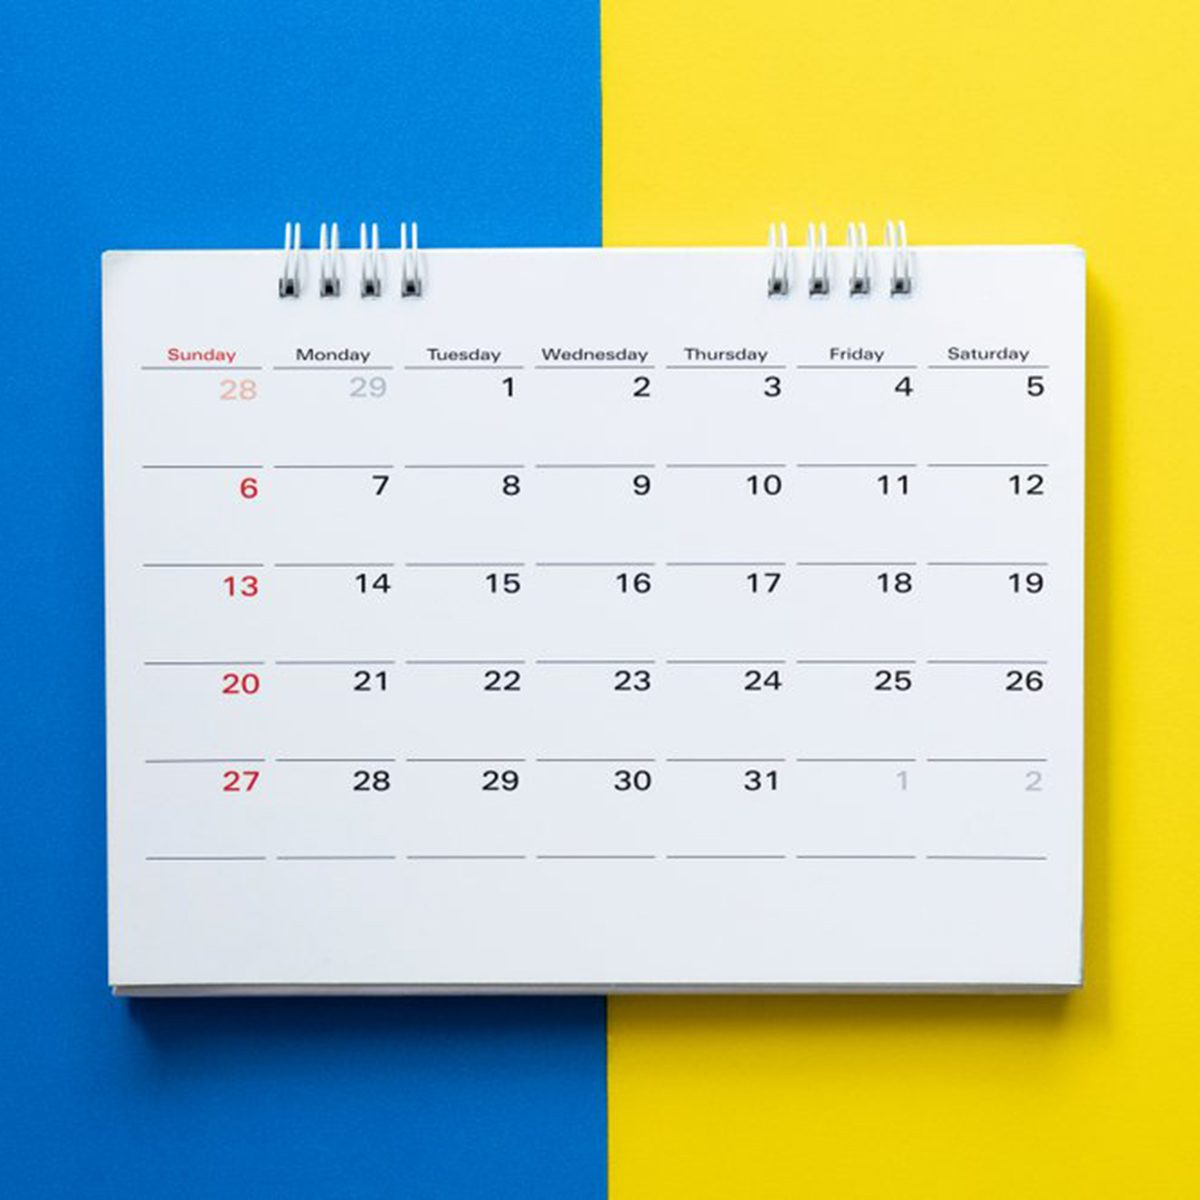 Calendar on a blue and yellow background